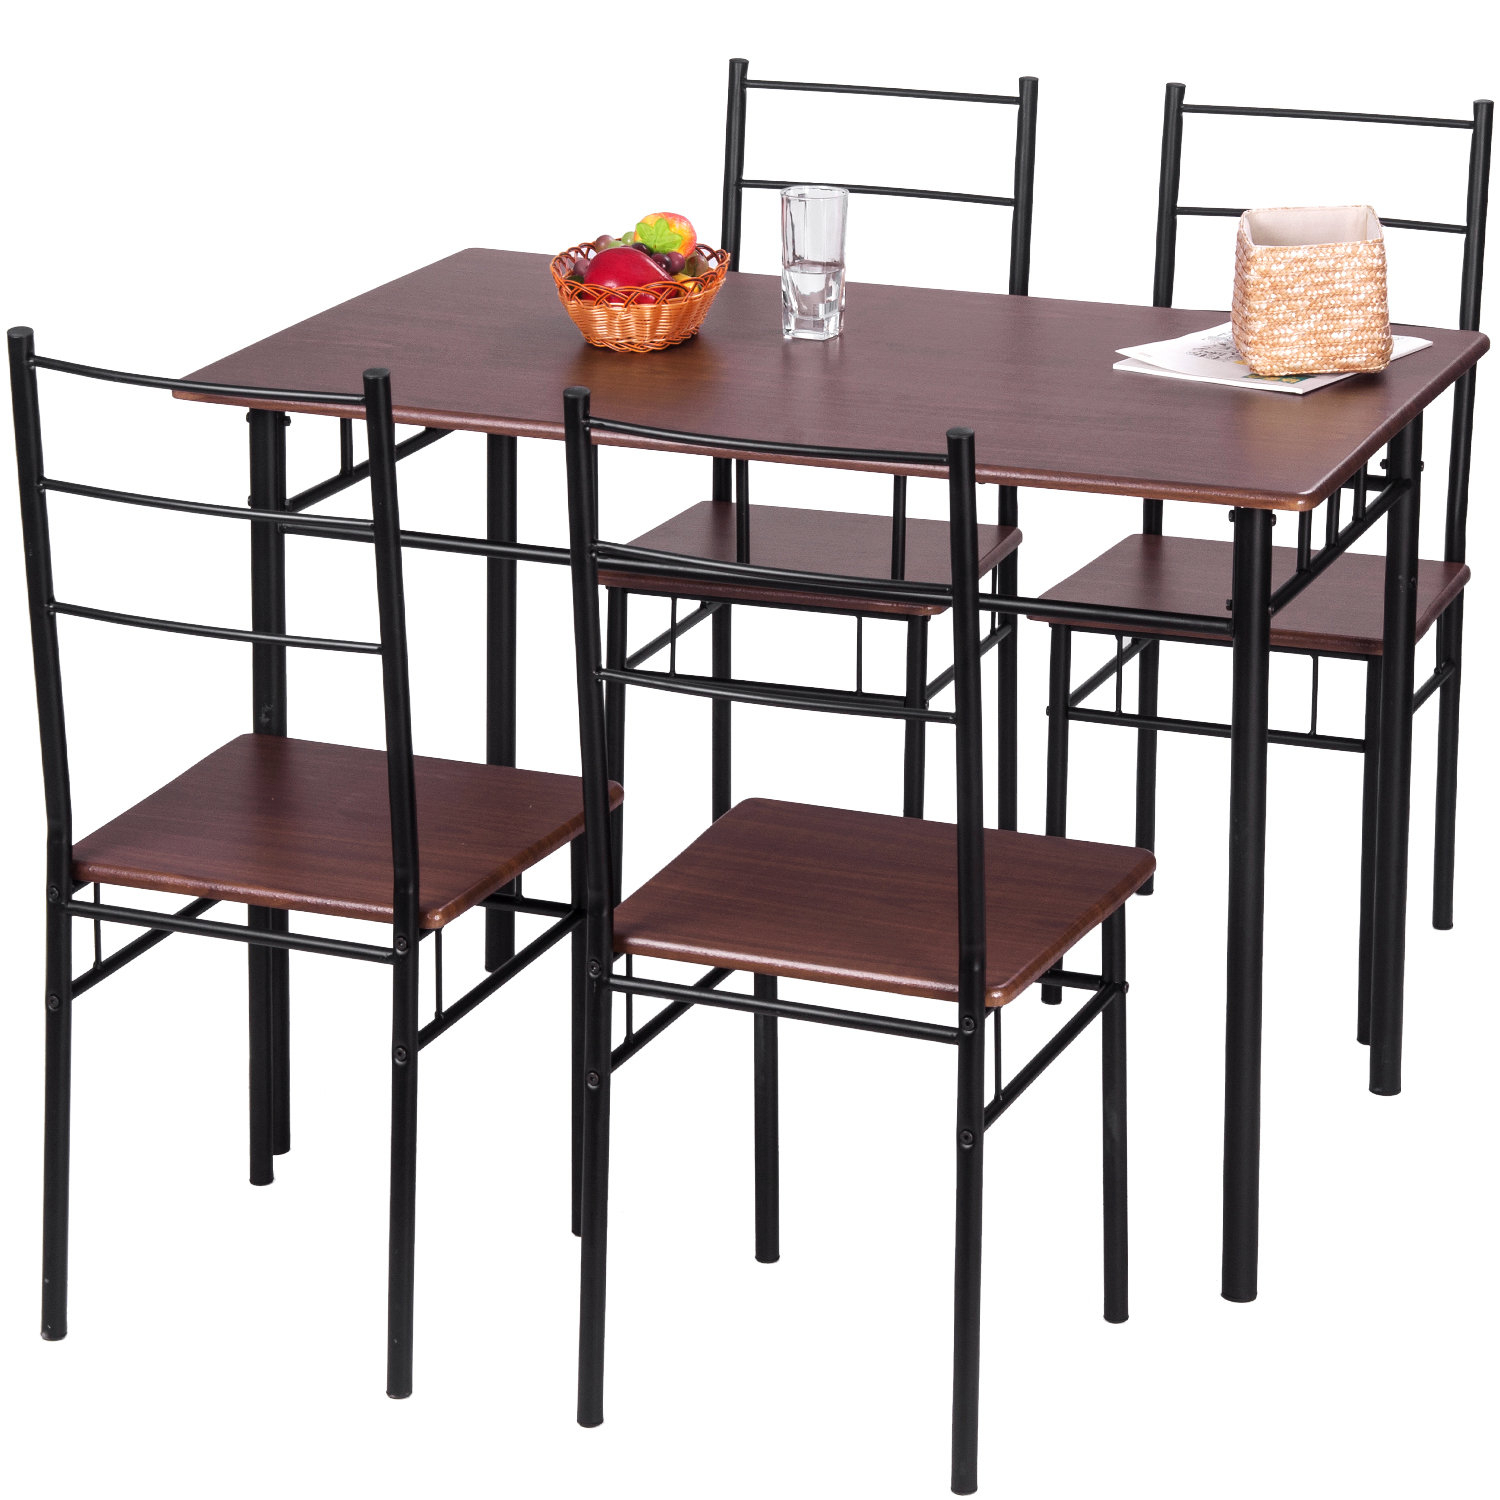 5 Piece Breakfast Nook Dining Set Regarding Most Recent Mulvey 5 Piece Dining Sets (View 13 of 20)